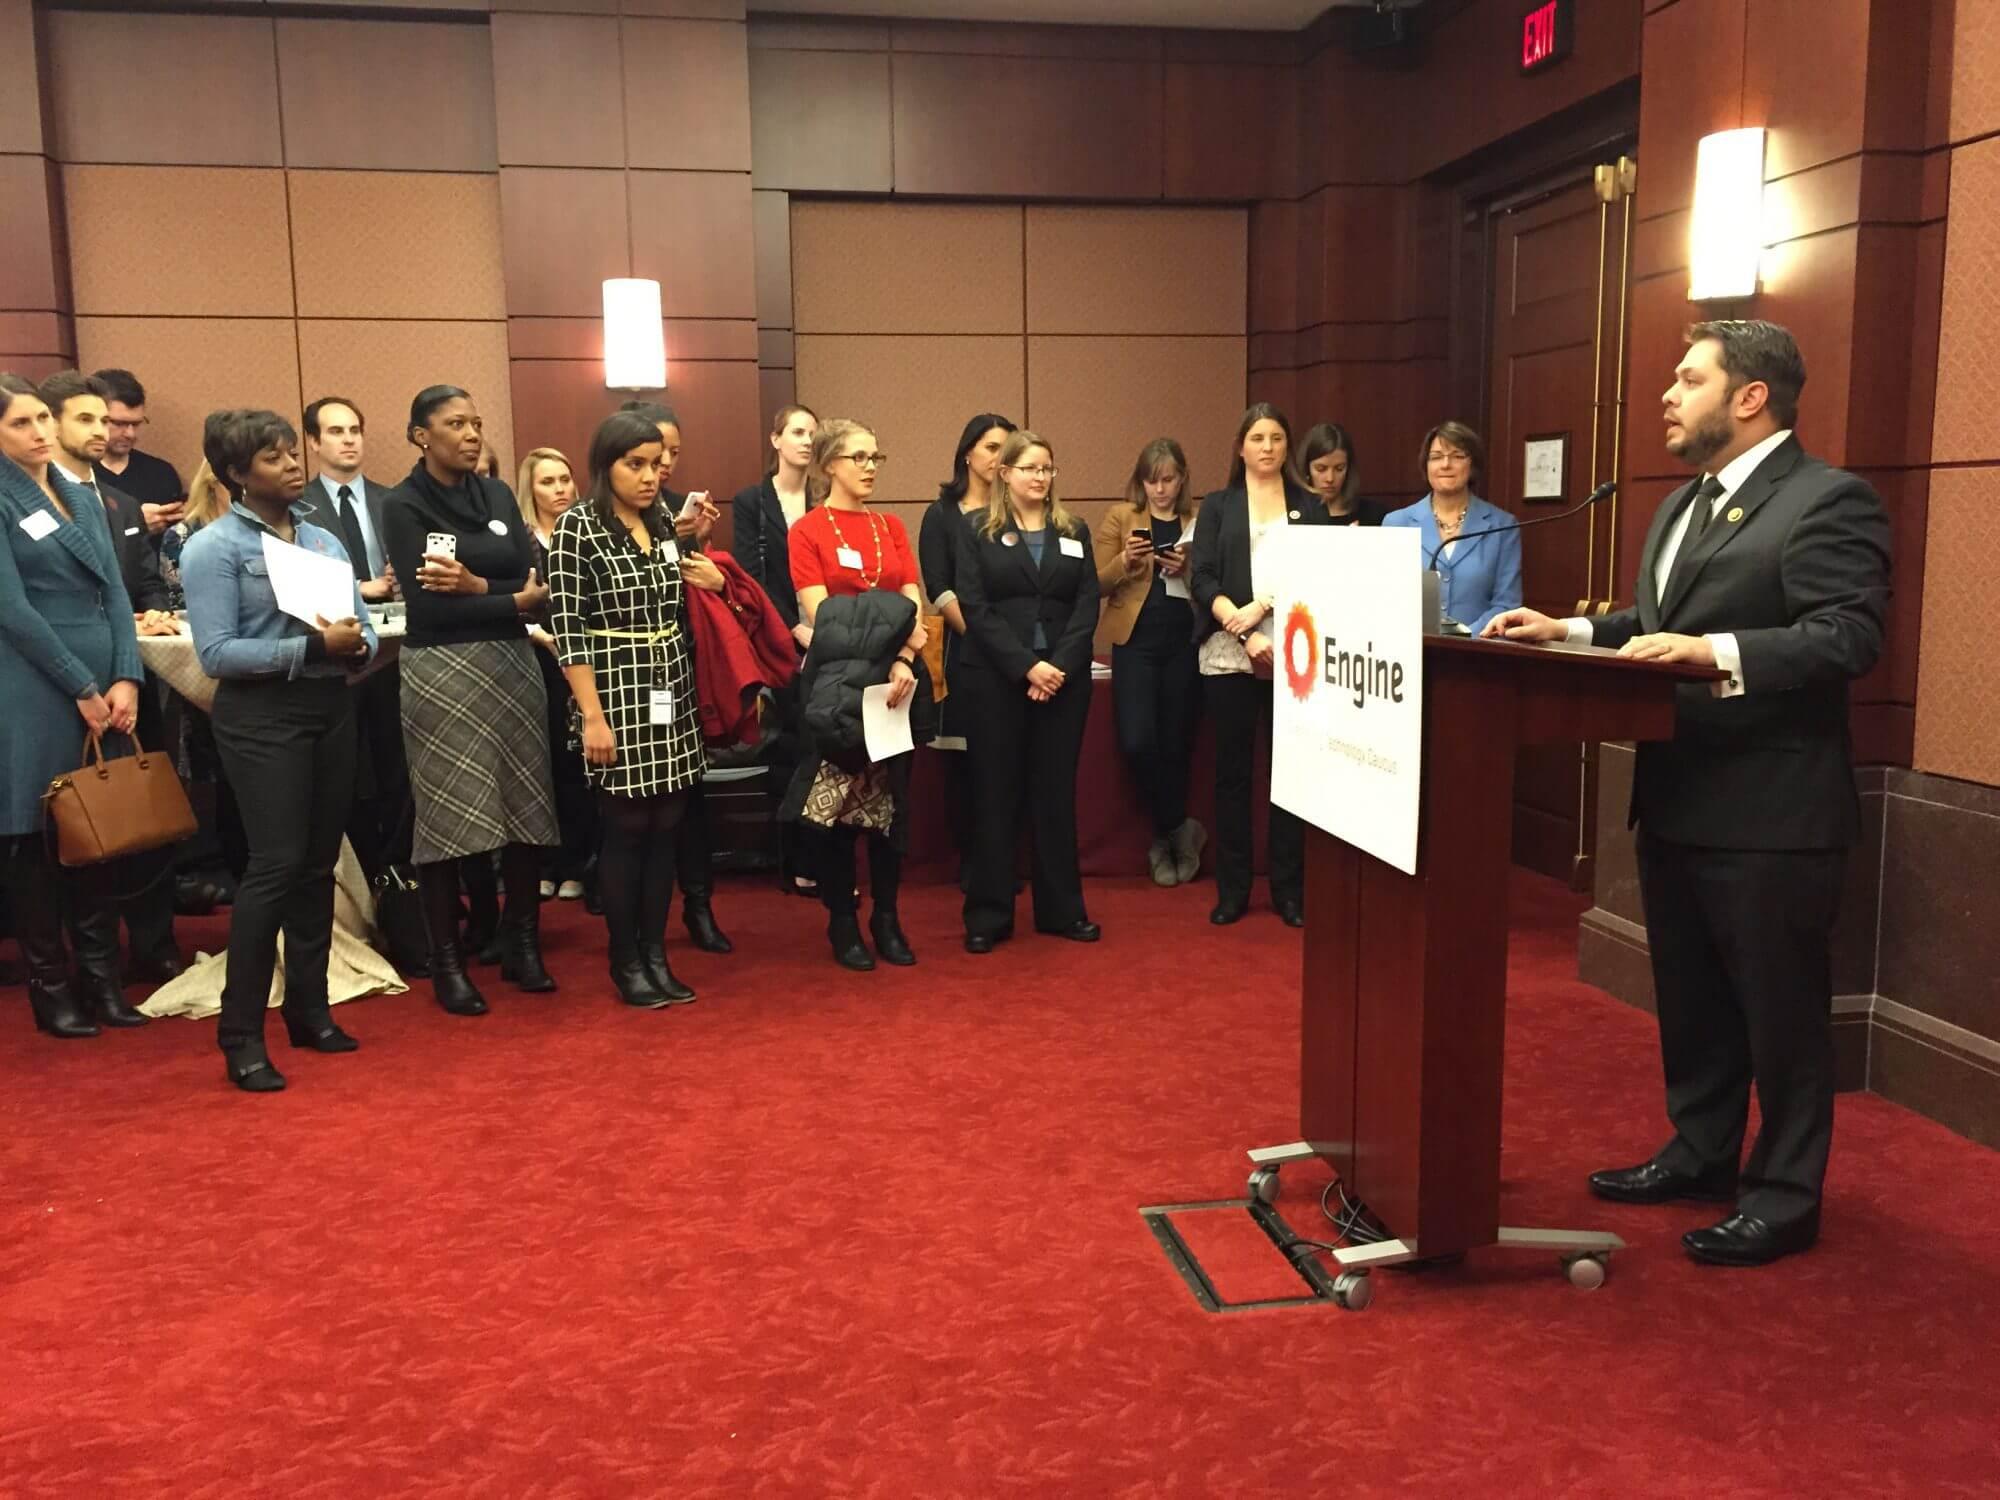 Congressional, startup leaders introduce new tech diversity caucus